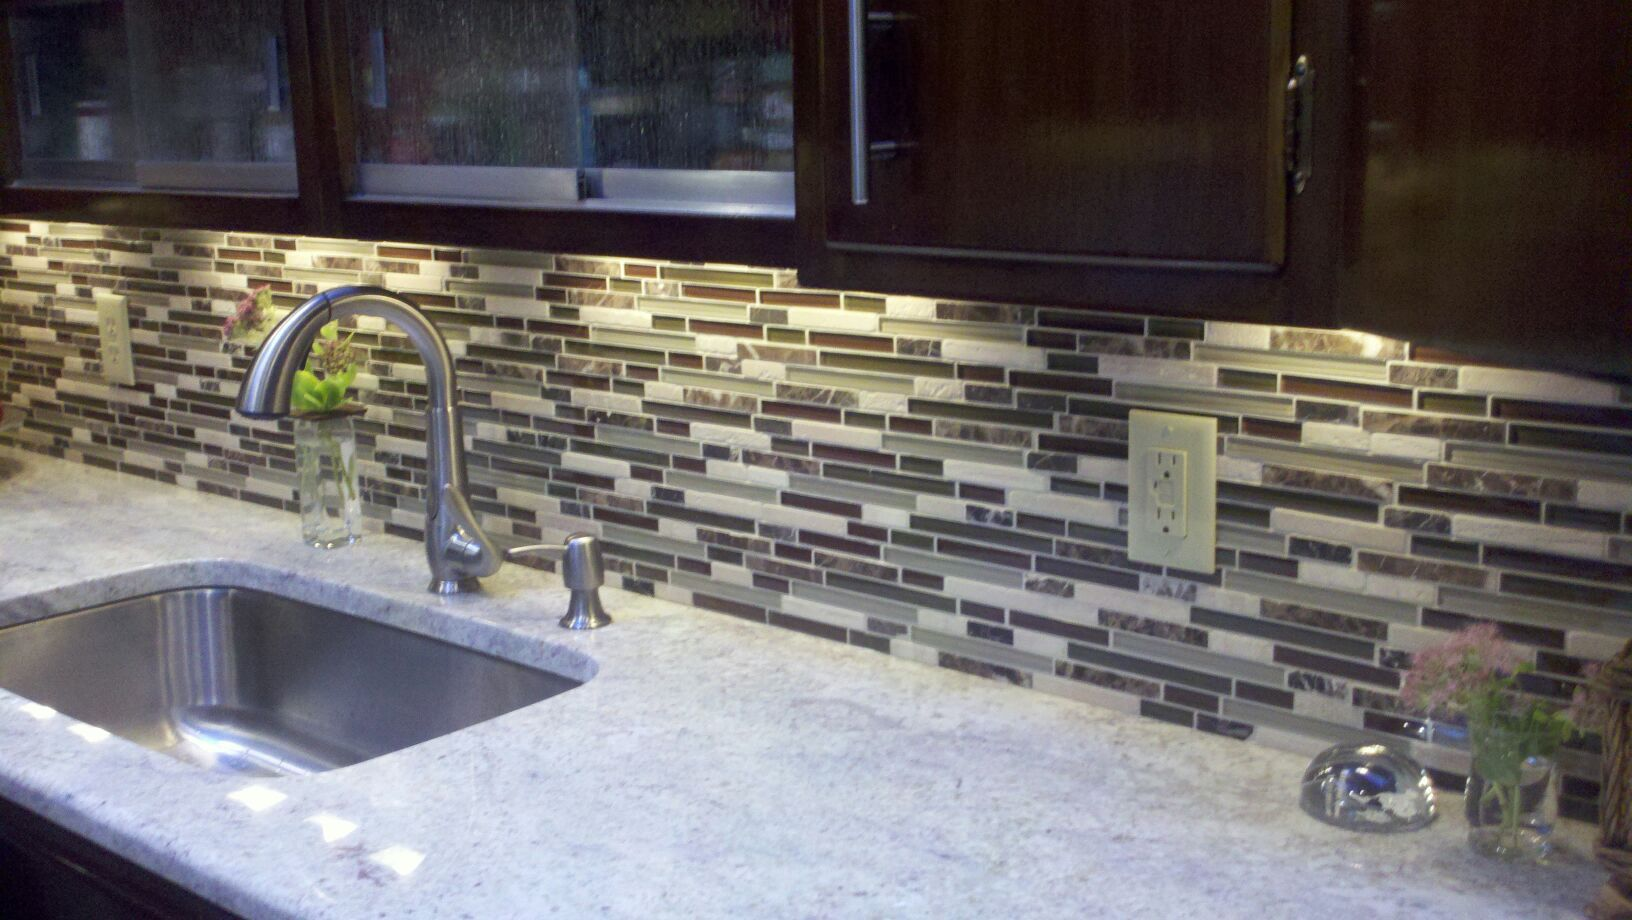 Kitchen Backsplash Glass Tile Design Ideas farmhouse sink area in cottage kitchen Sample Tao Sea Wave 14 Sheet Glass Tile Sample 249 Tiles Stone Porcelain Pinterest Sea Waves Glass Tiles And Tile